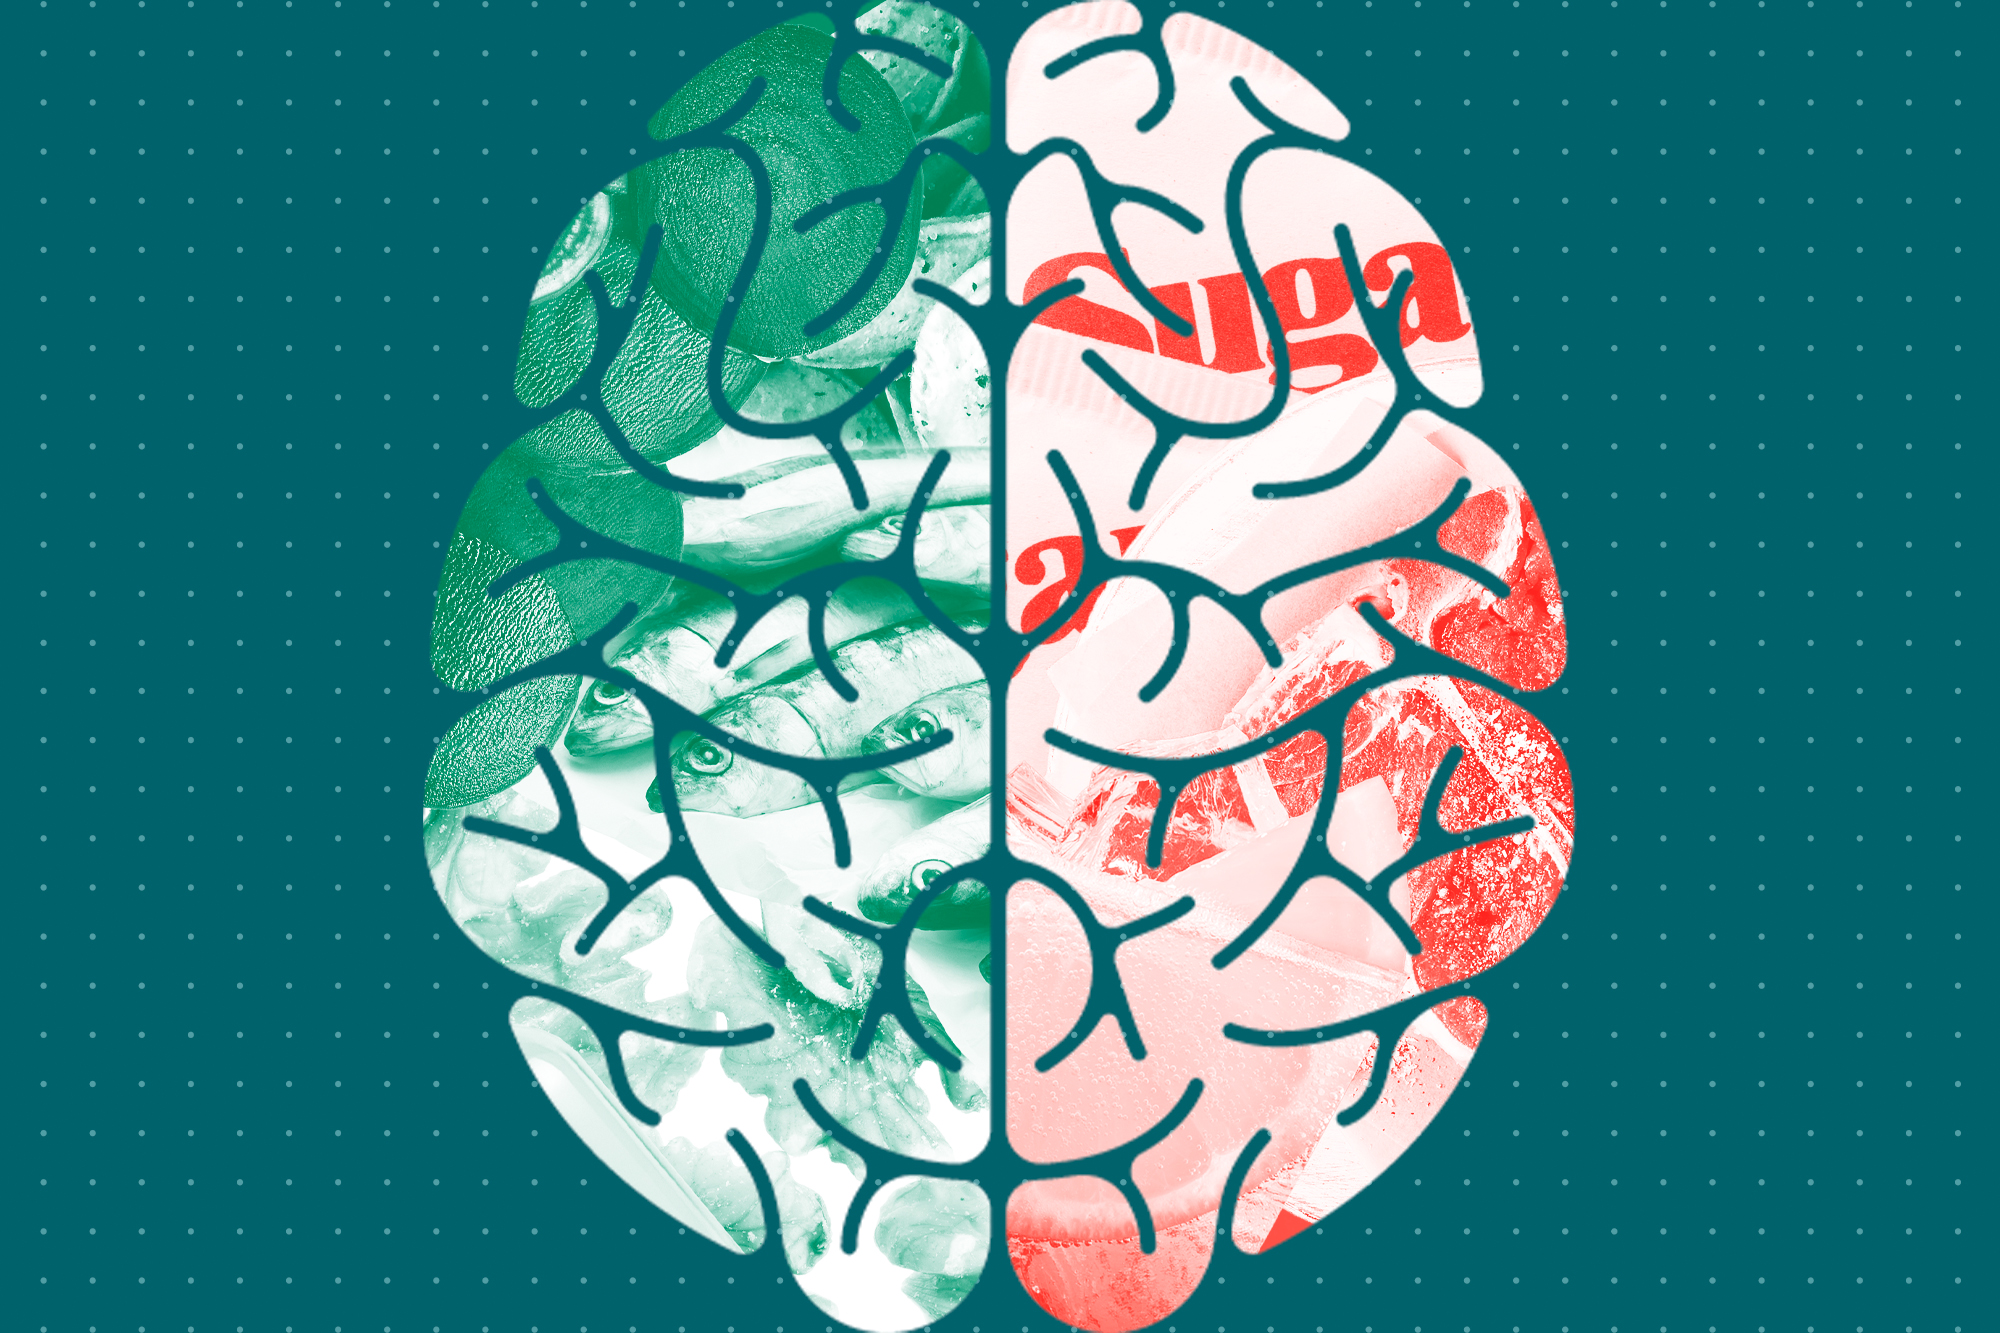 An illustration of a brain split in half. One half has healthy food and the second half has unhealthy foods for your brain